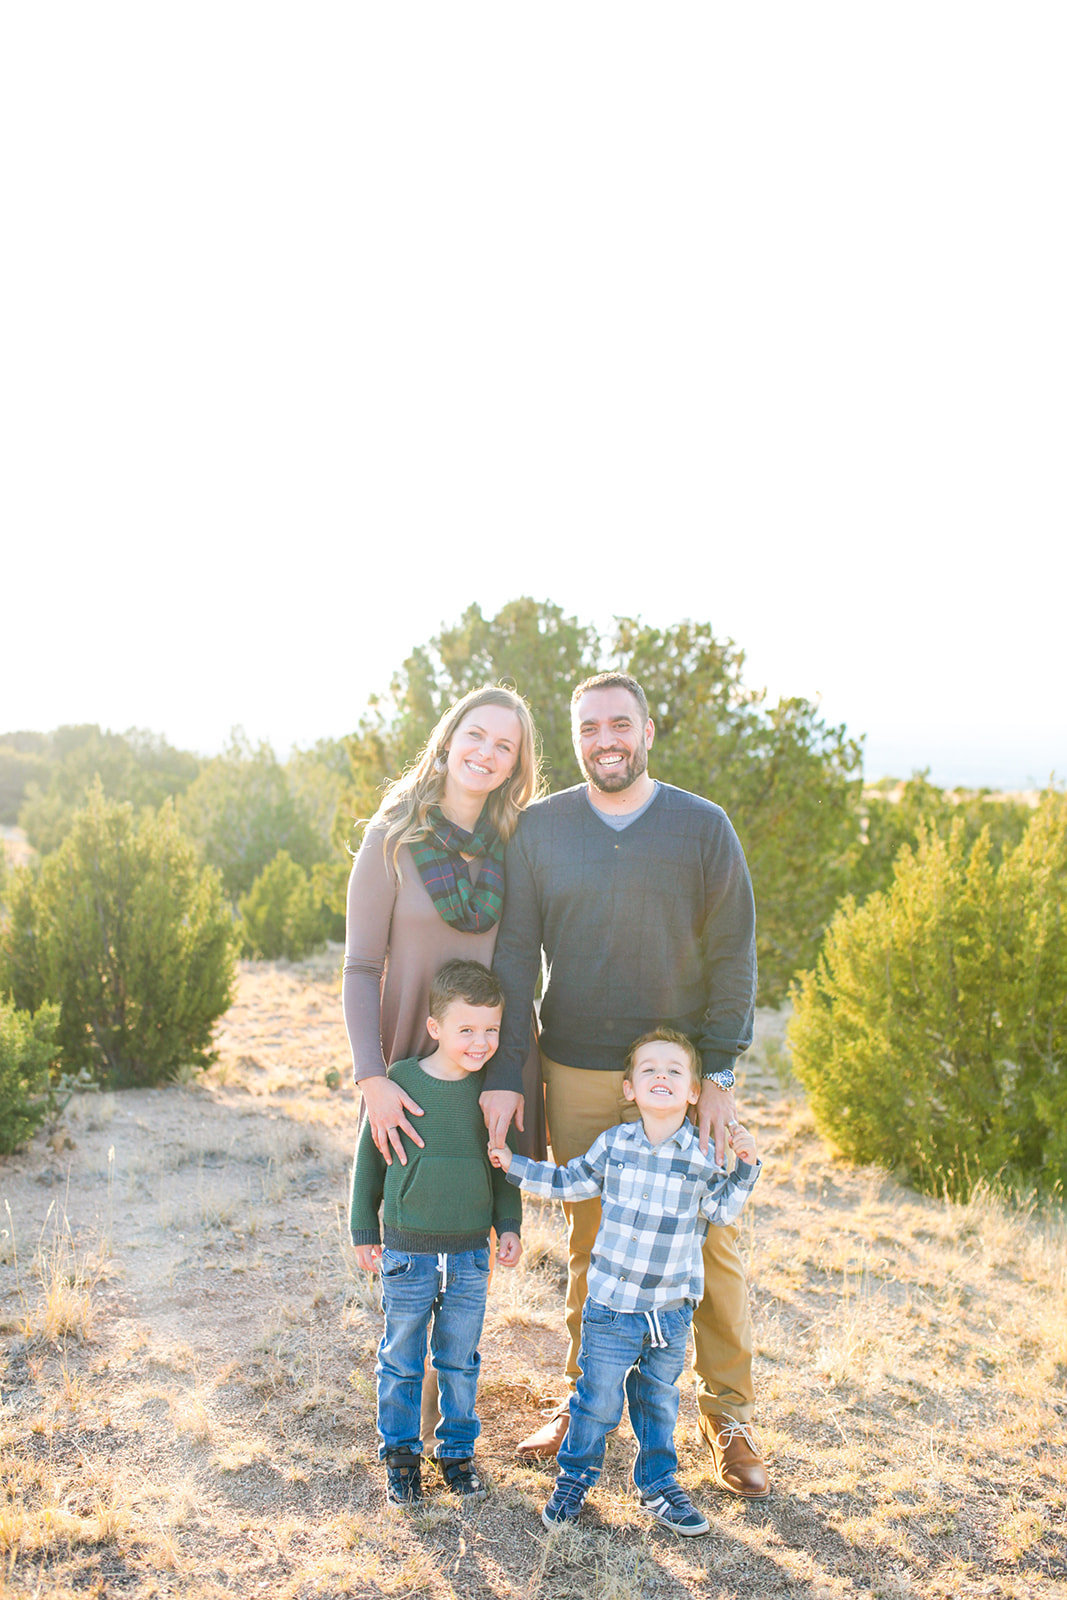 Albuquerque Family Photography_Foothills_www.tylerbrooke.com_Kate Kauffman_003